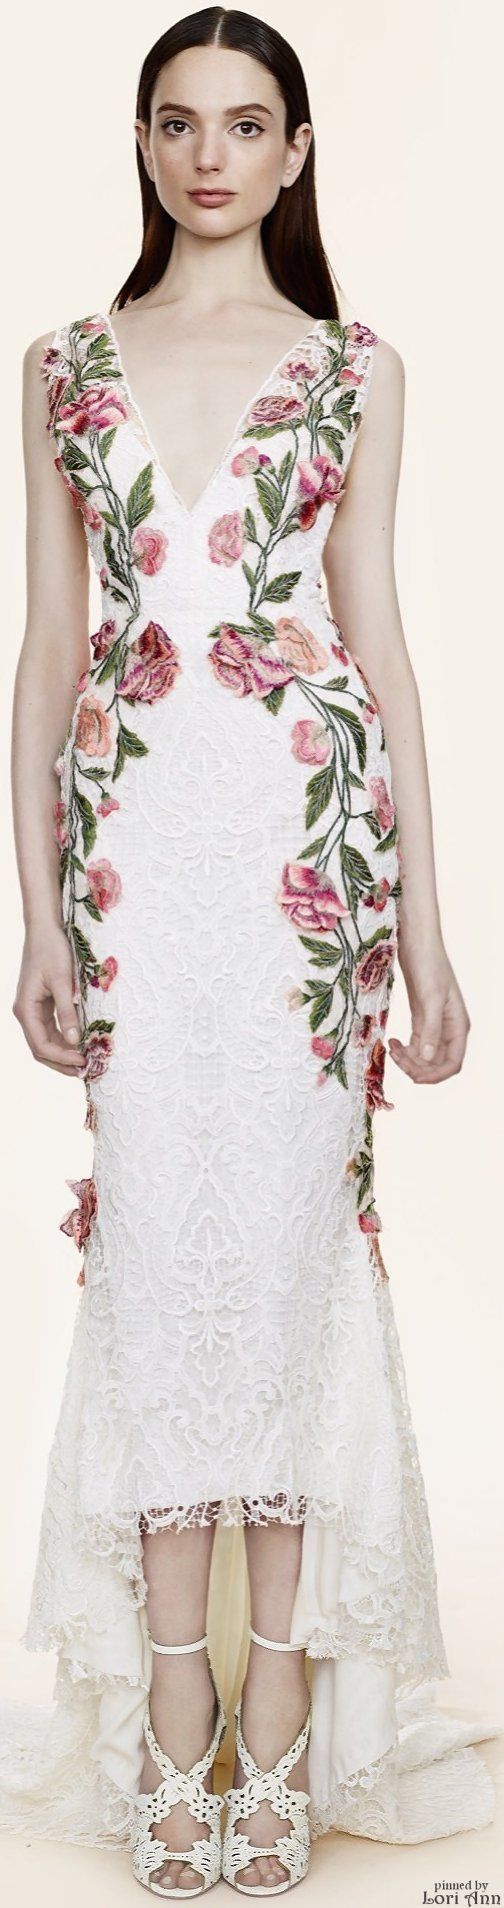 Marchesa Resort 2016. White maxi floral dress. women fashion outfit clothing style apparel @roressclothes closet ideas